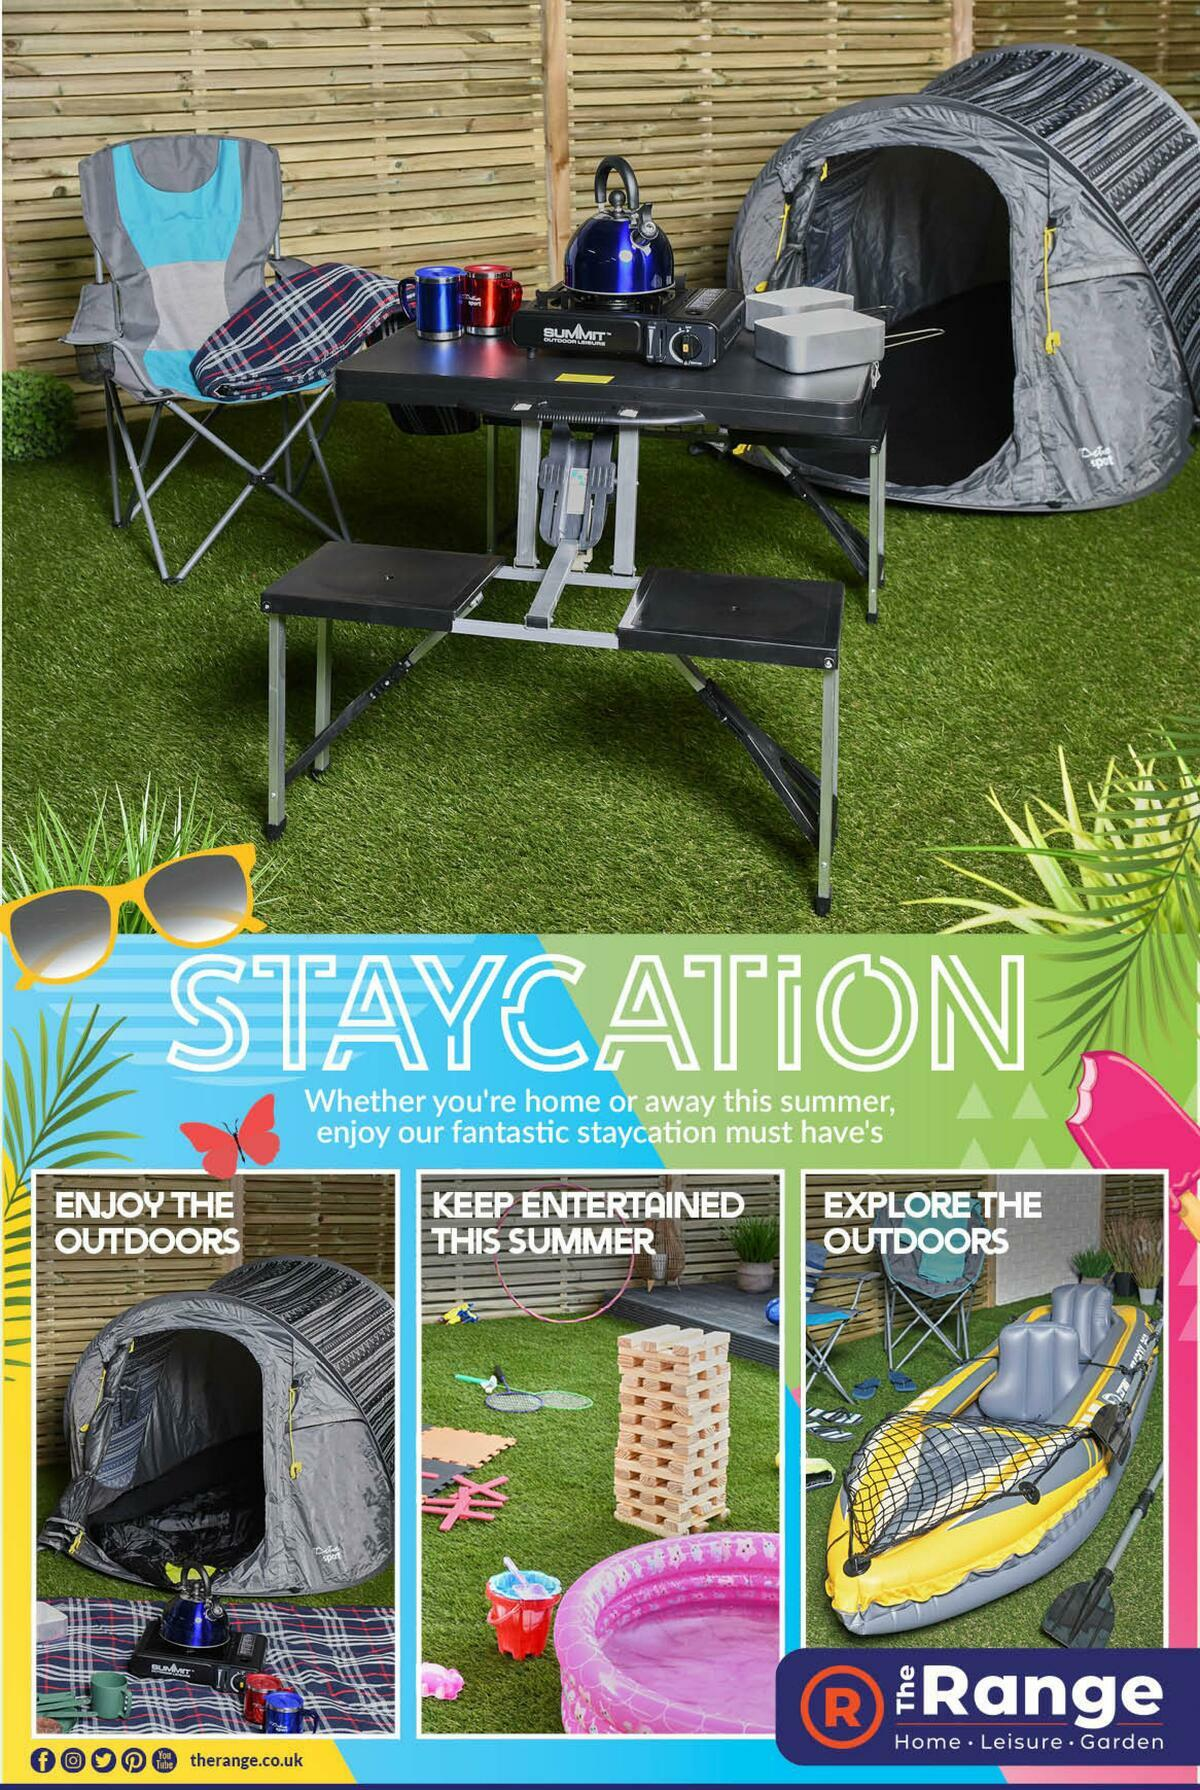 The Range Staycation Offers from April 30